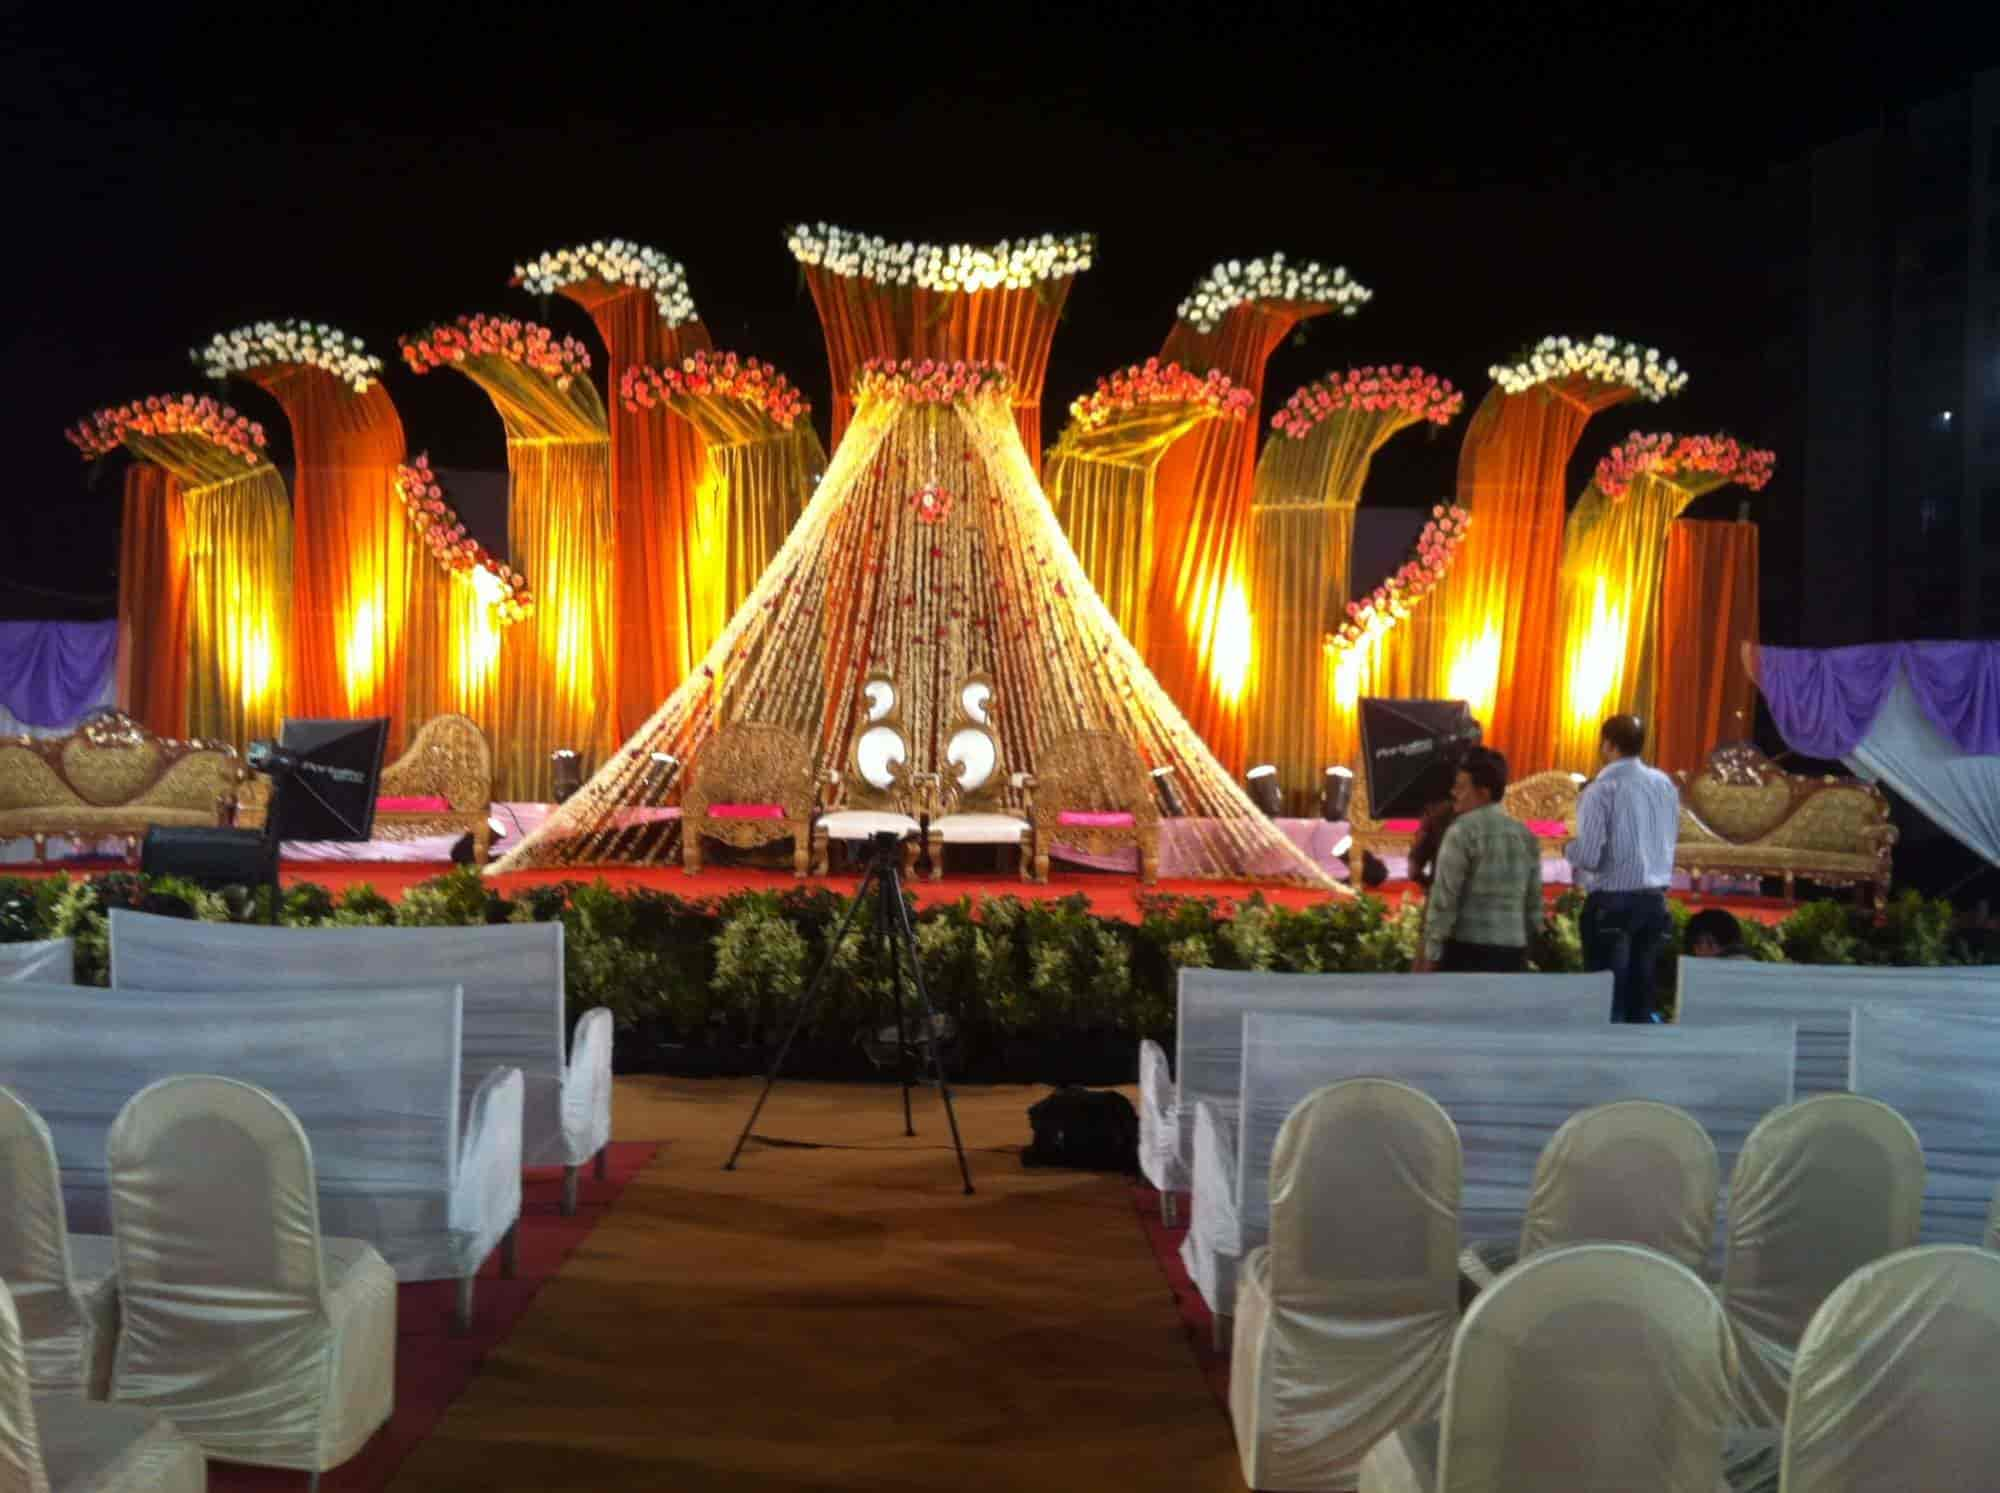 Medtiyas party plots mira road wedding grounds in mumbai justdial junglespirit Choice Image